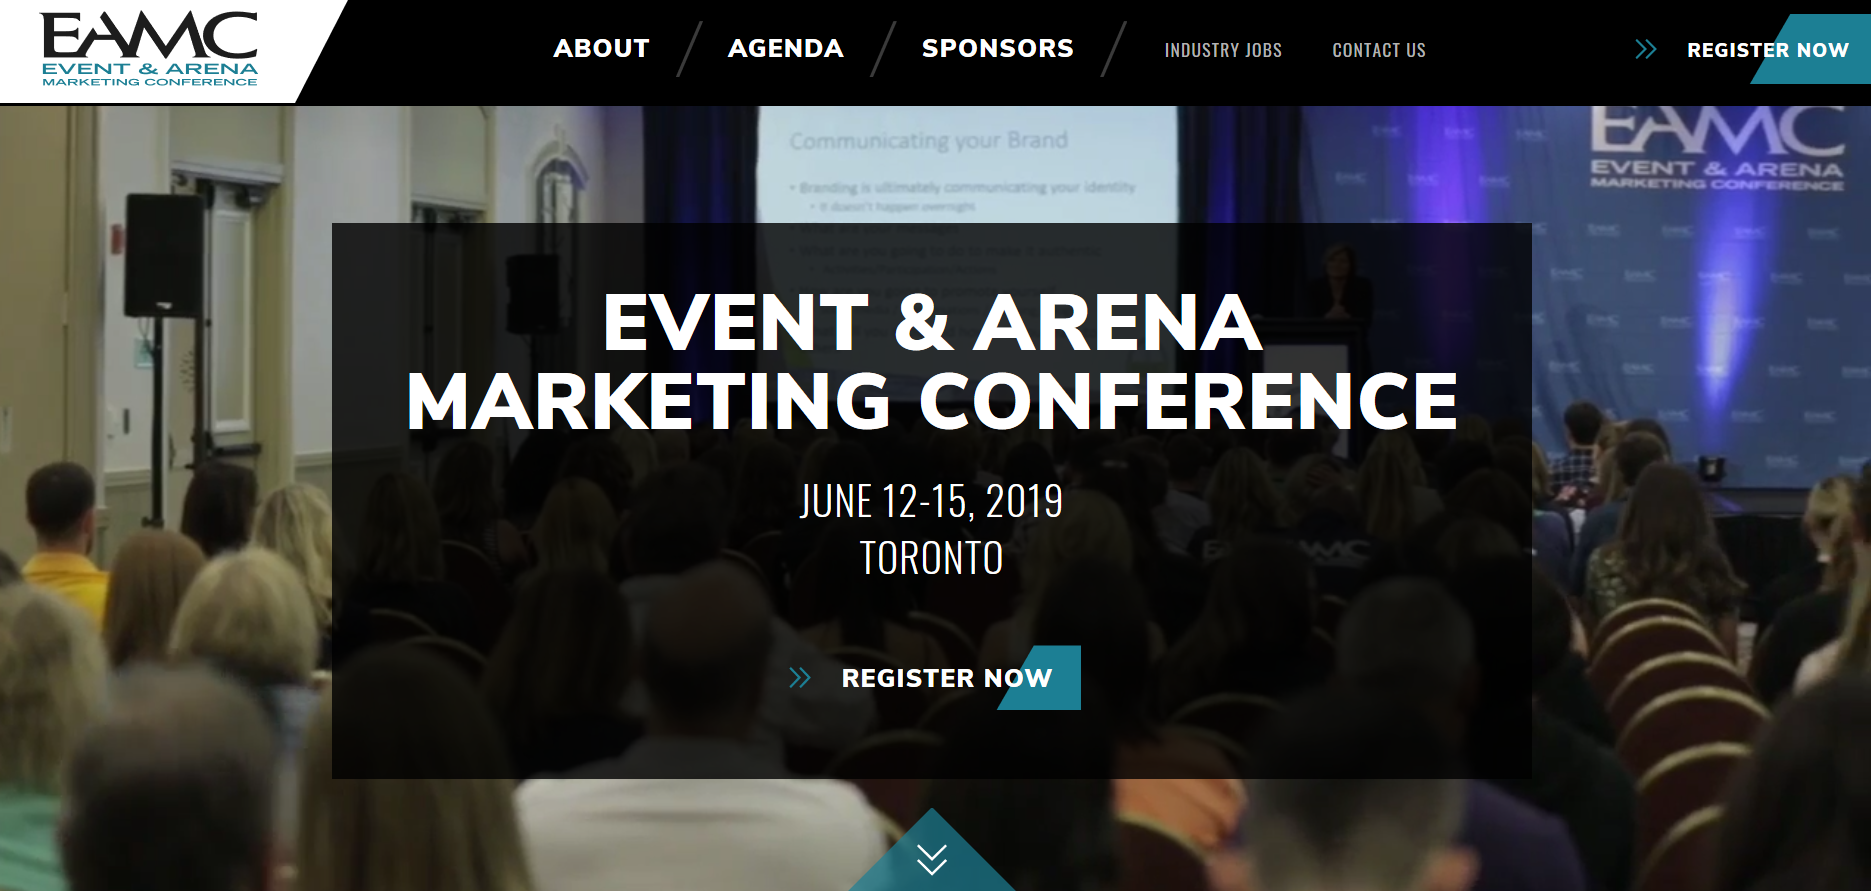 Event Arena Marketing Conference (EAMC) @ Hilton Toronto